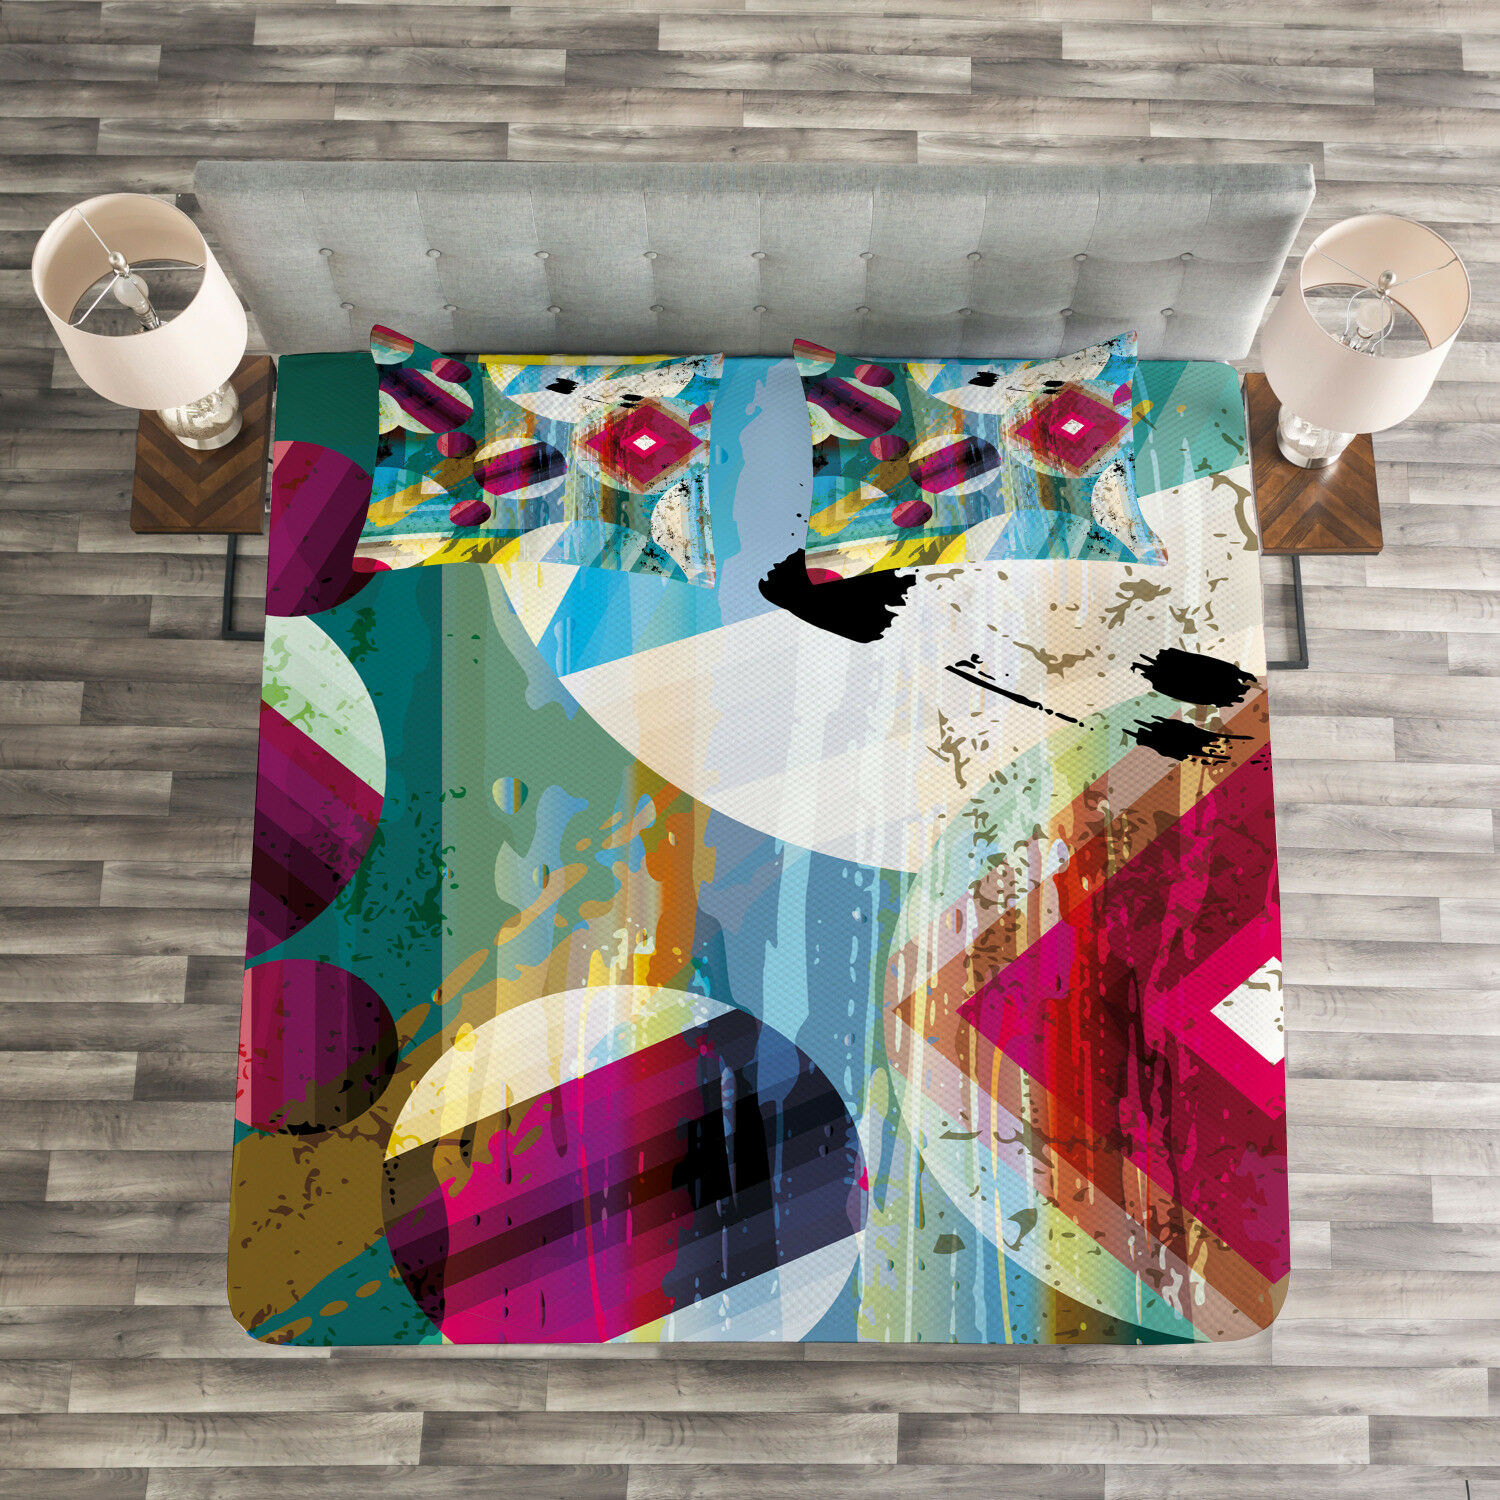 Abstract Art Quilted Bedspread & Pillow Shams Set, Surreal Pattern Print